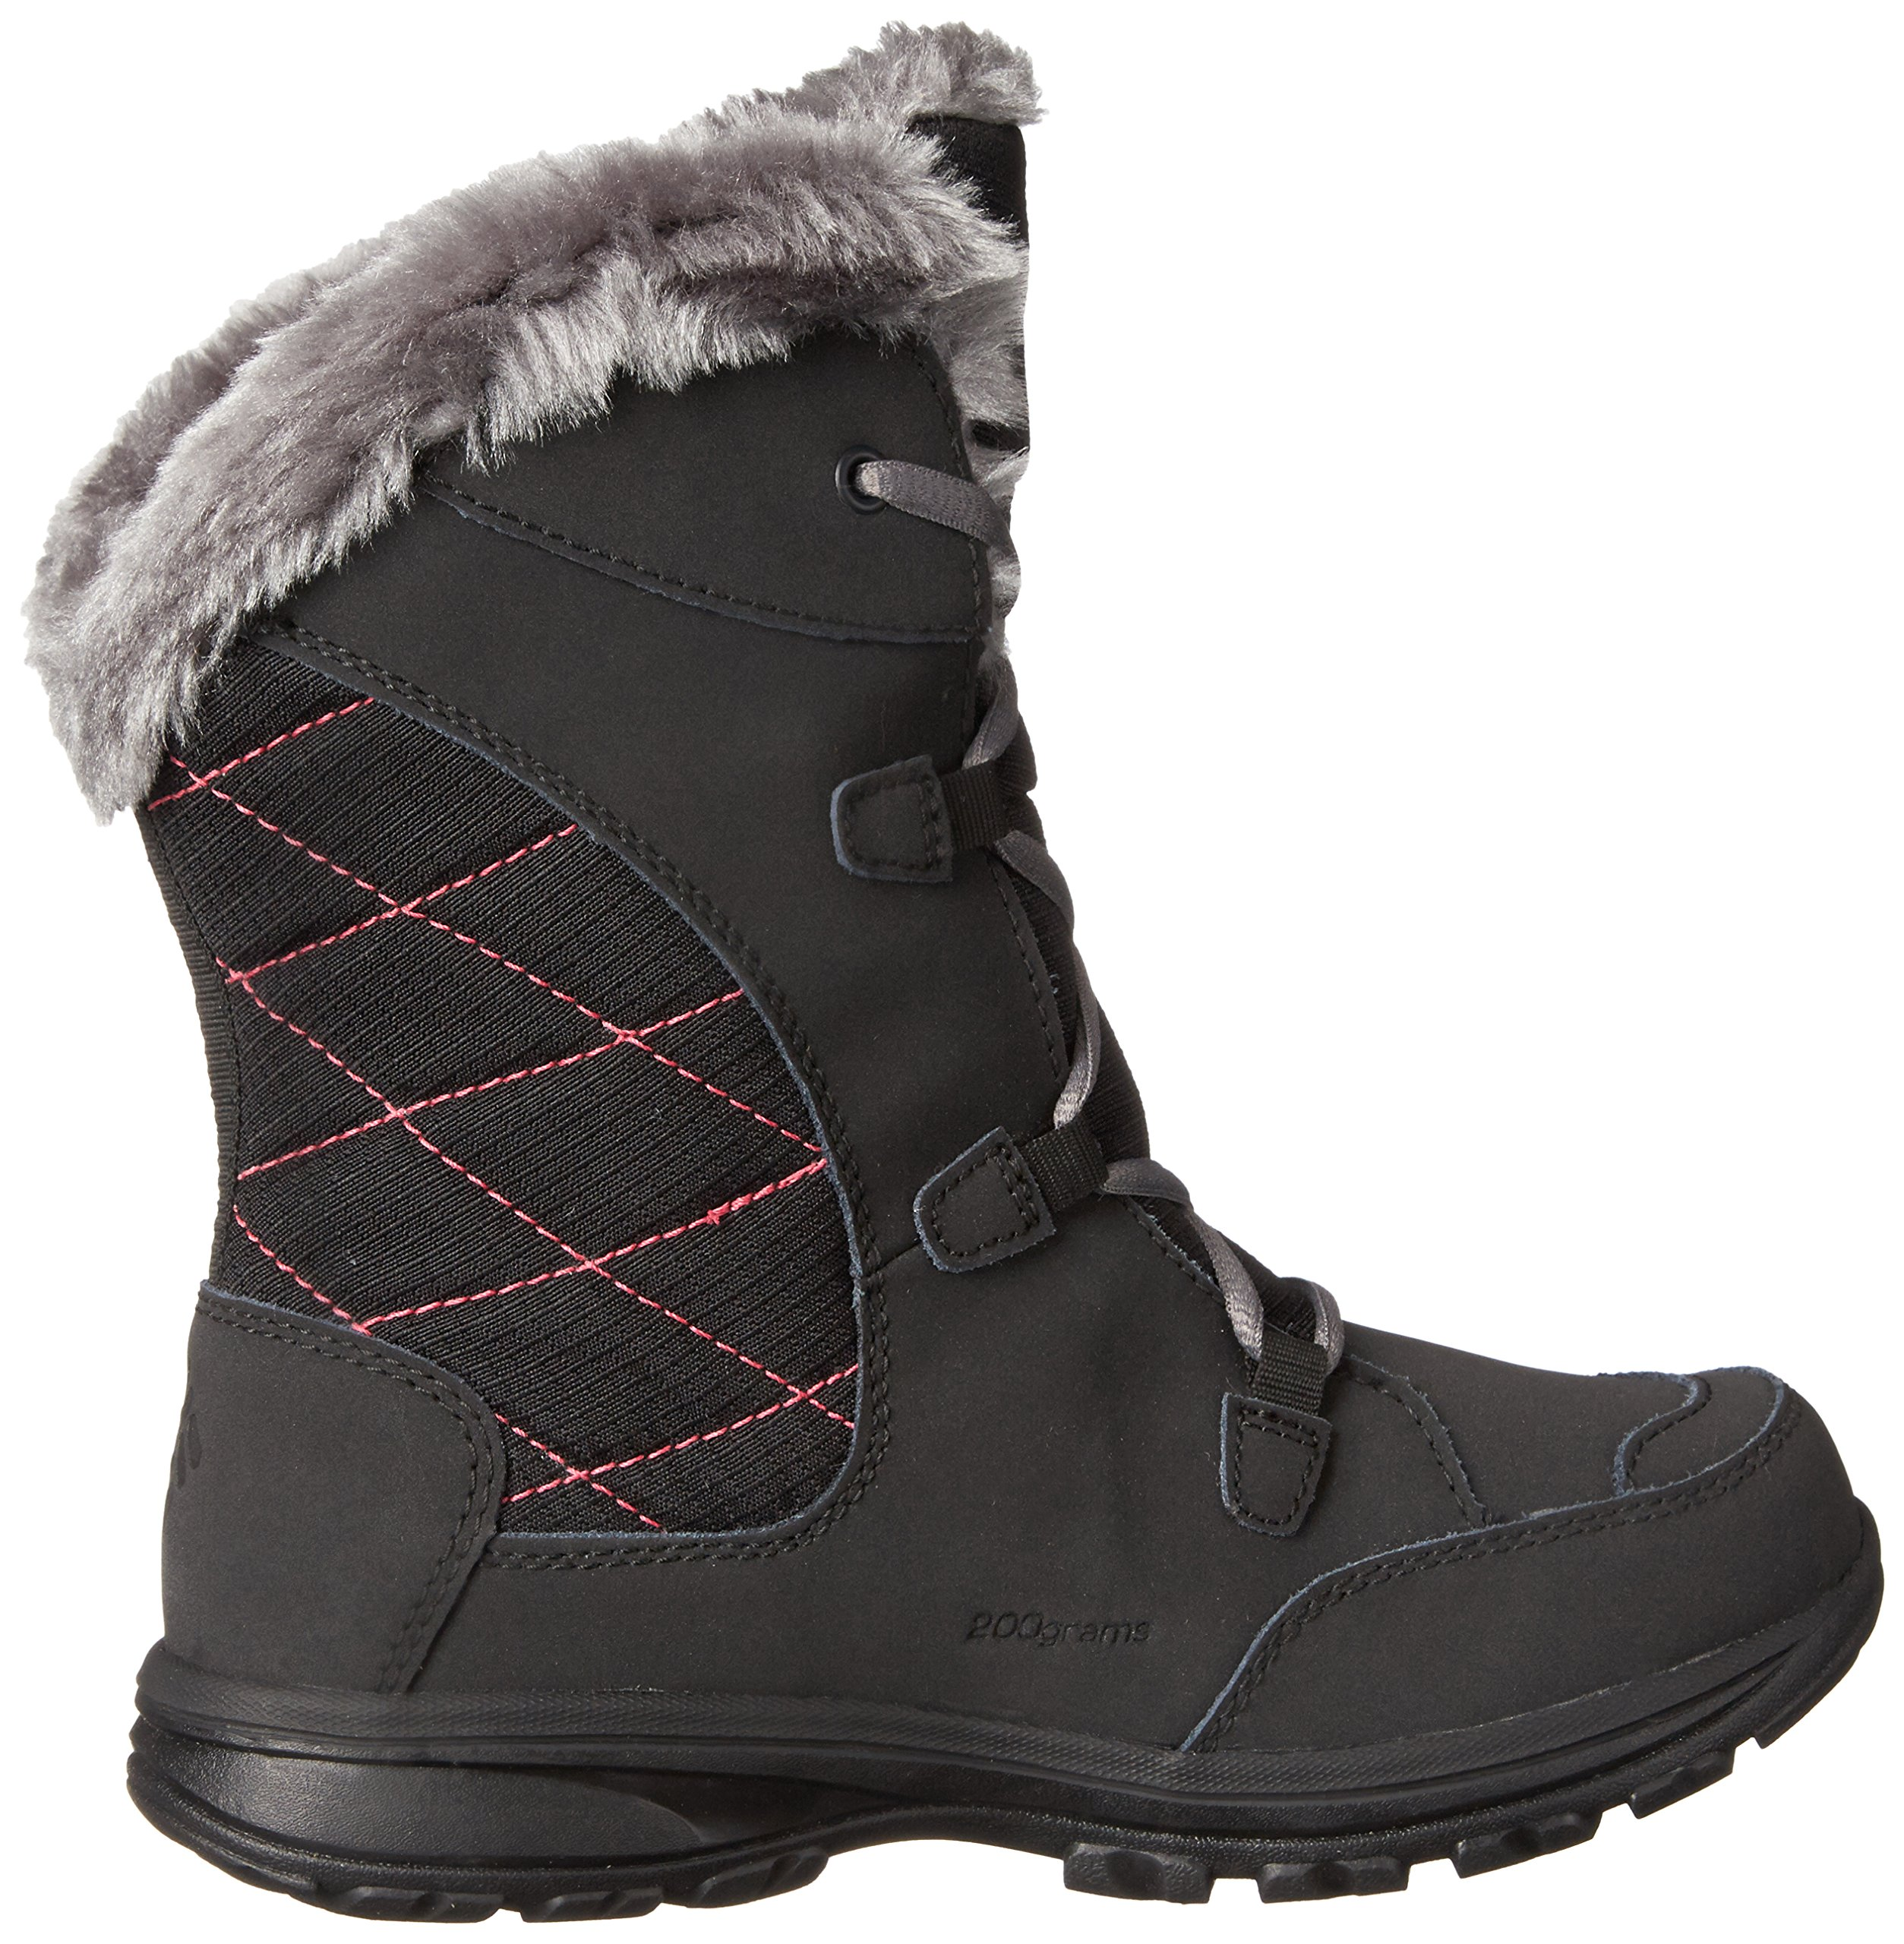 Columbia Youth Ice Maiden Lace Winter Boot (Little Kid/Big Kid), Black, 1 M US Little Kid by Columbia (Image #8)